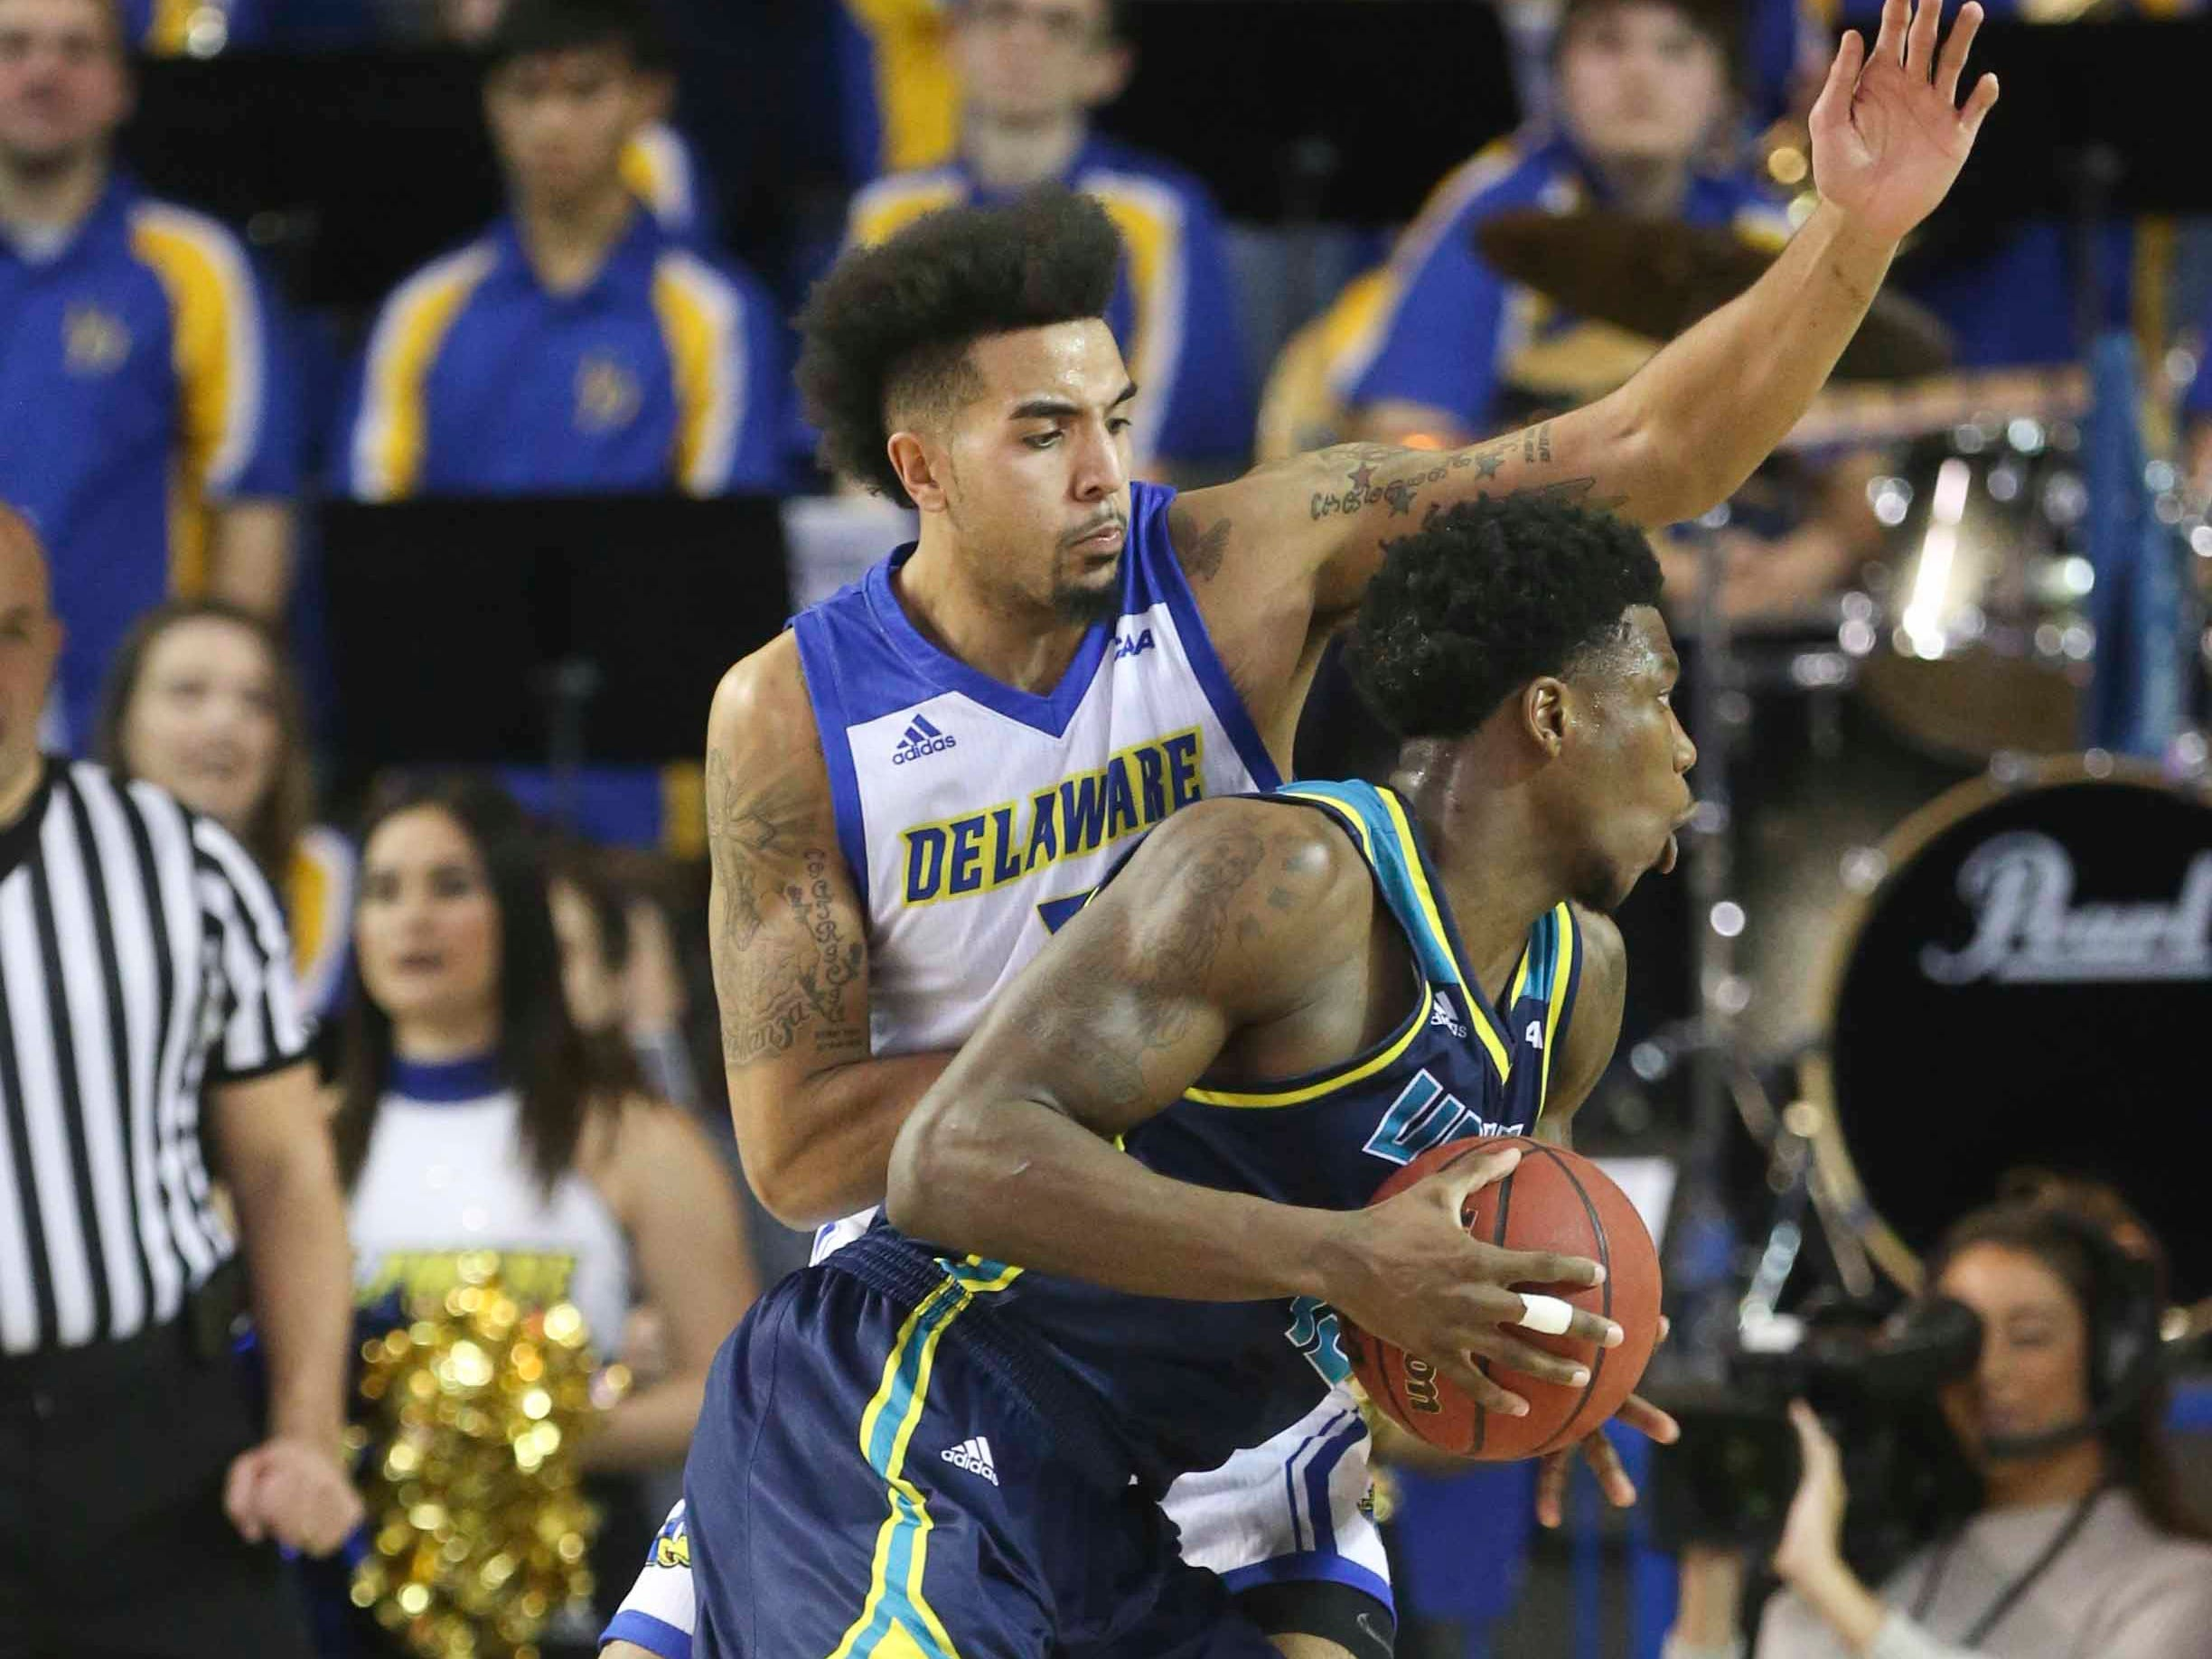 Delaware's Eric Carter (left) defends as UNC-Wilmington's Devontae Cacok pushes to the basket in the second half of Delaware's 70-66 win at the Bob Carpenter Center Saturday.